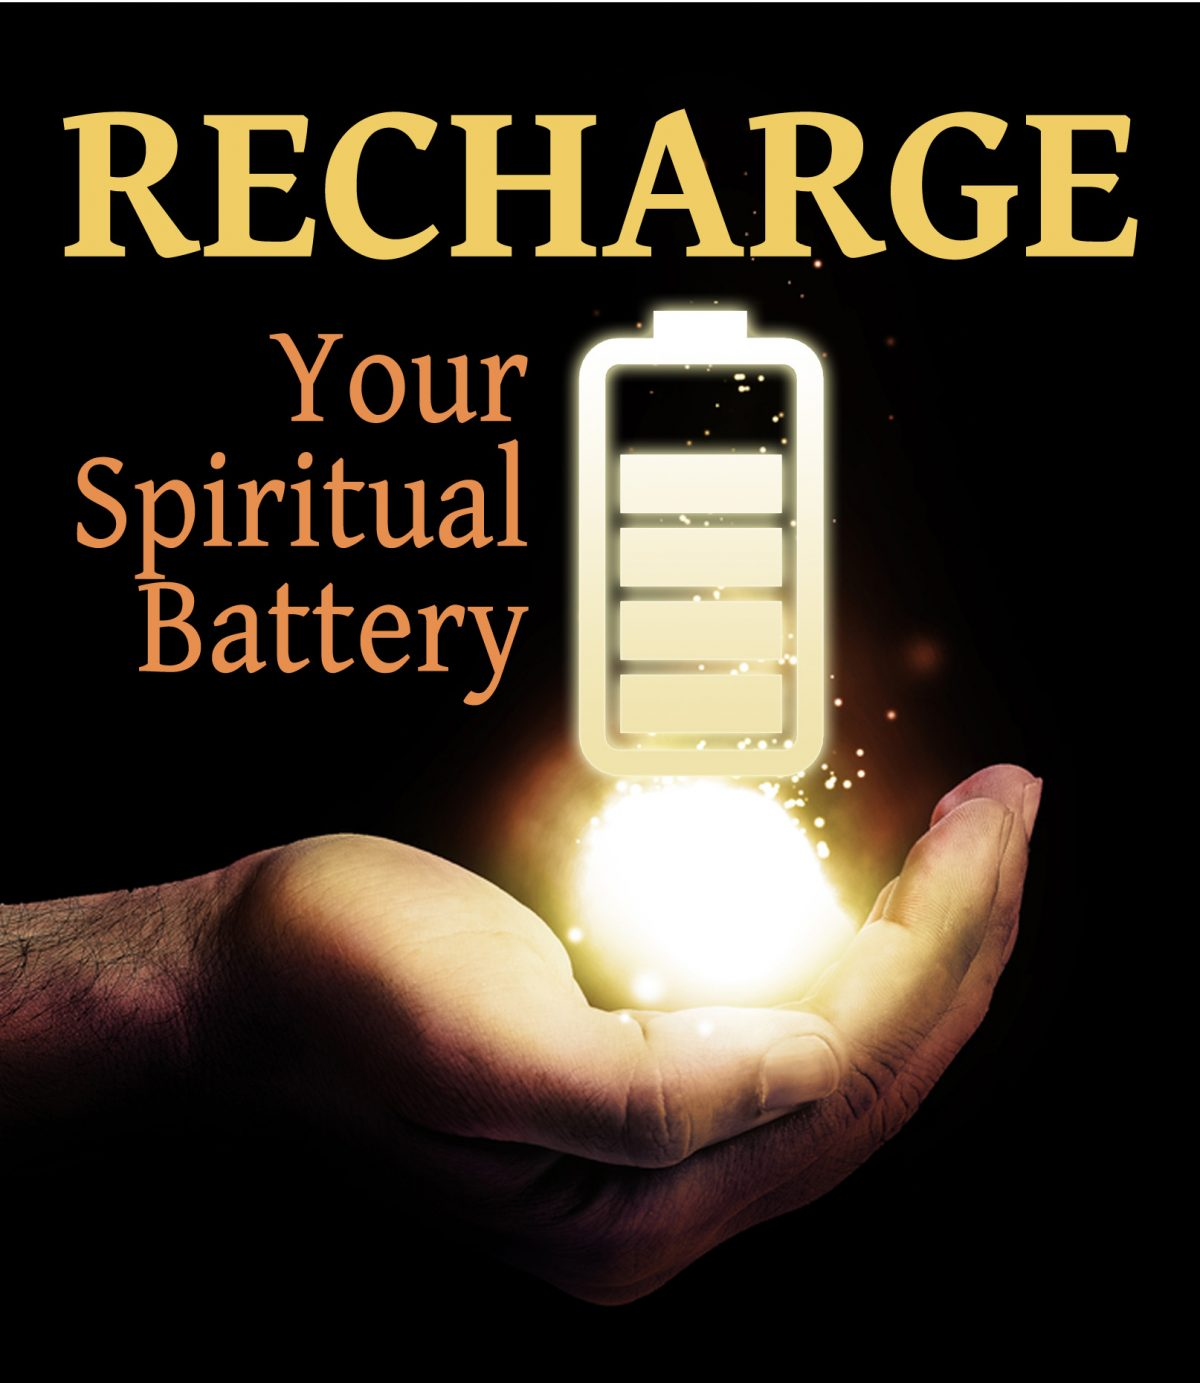 Recharge your spiritual battery